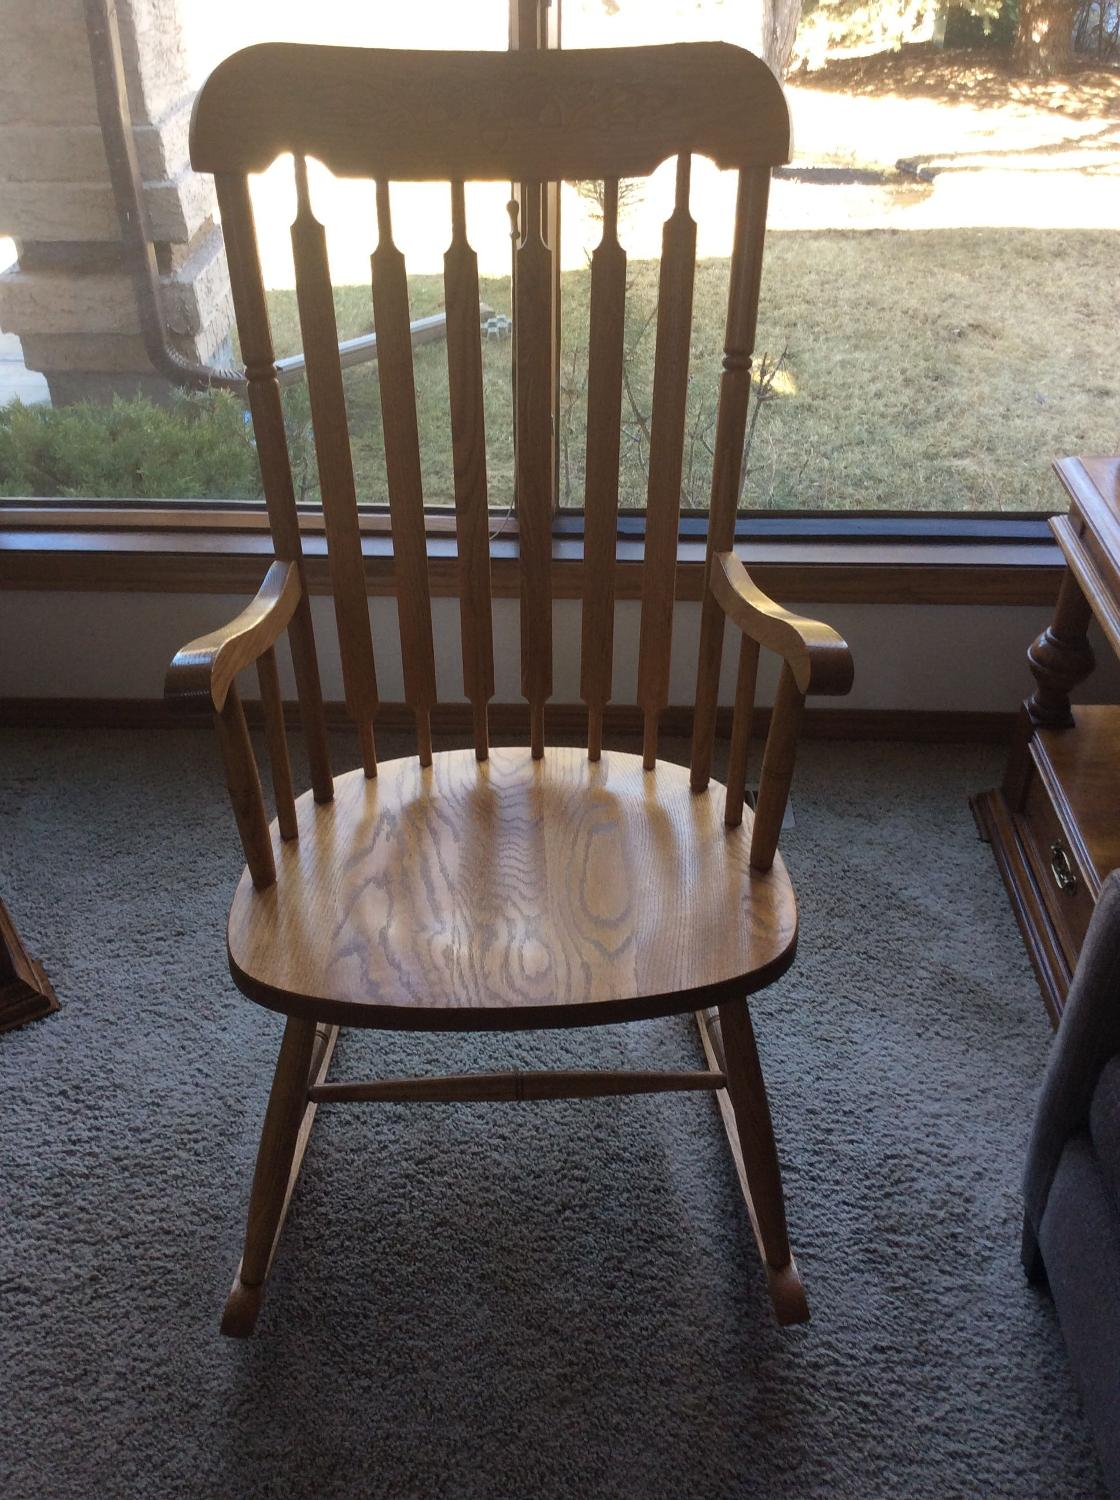 Best Wooden Rocking Chair For Sale In Calgary Alberta For 2017. Full resolution  portraiture, nominally Width 1120 Height 1500 pixels, portraiture with #4F5B7C.